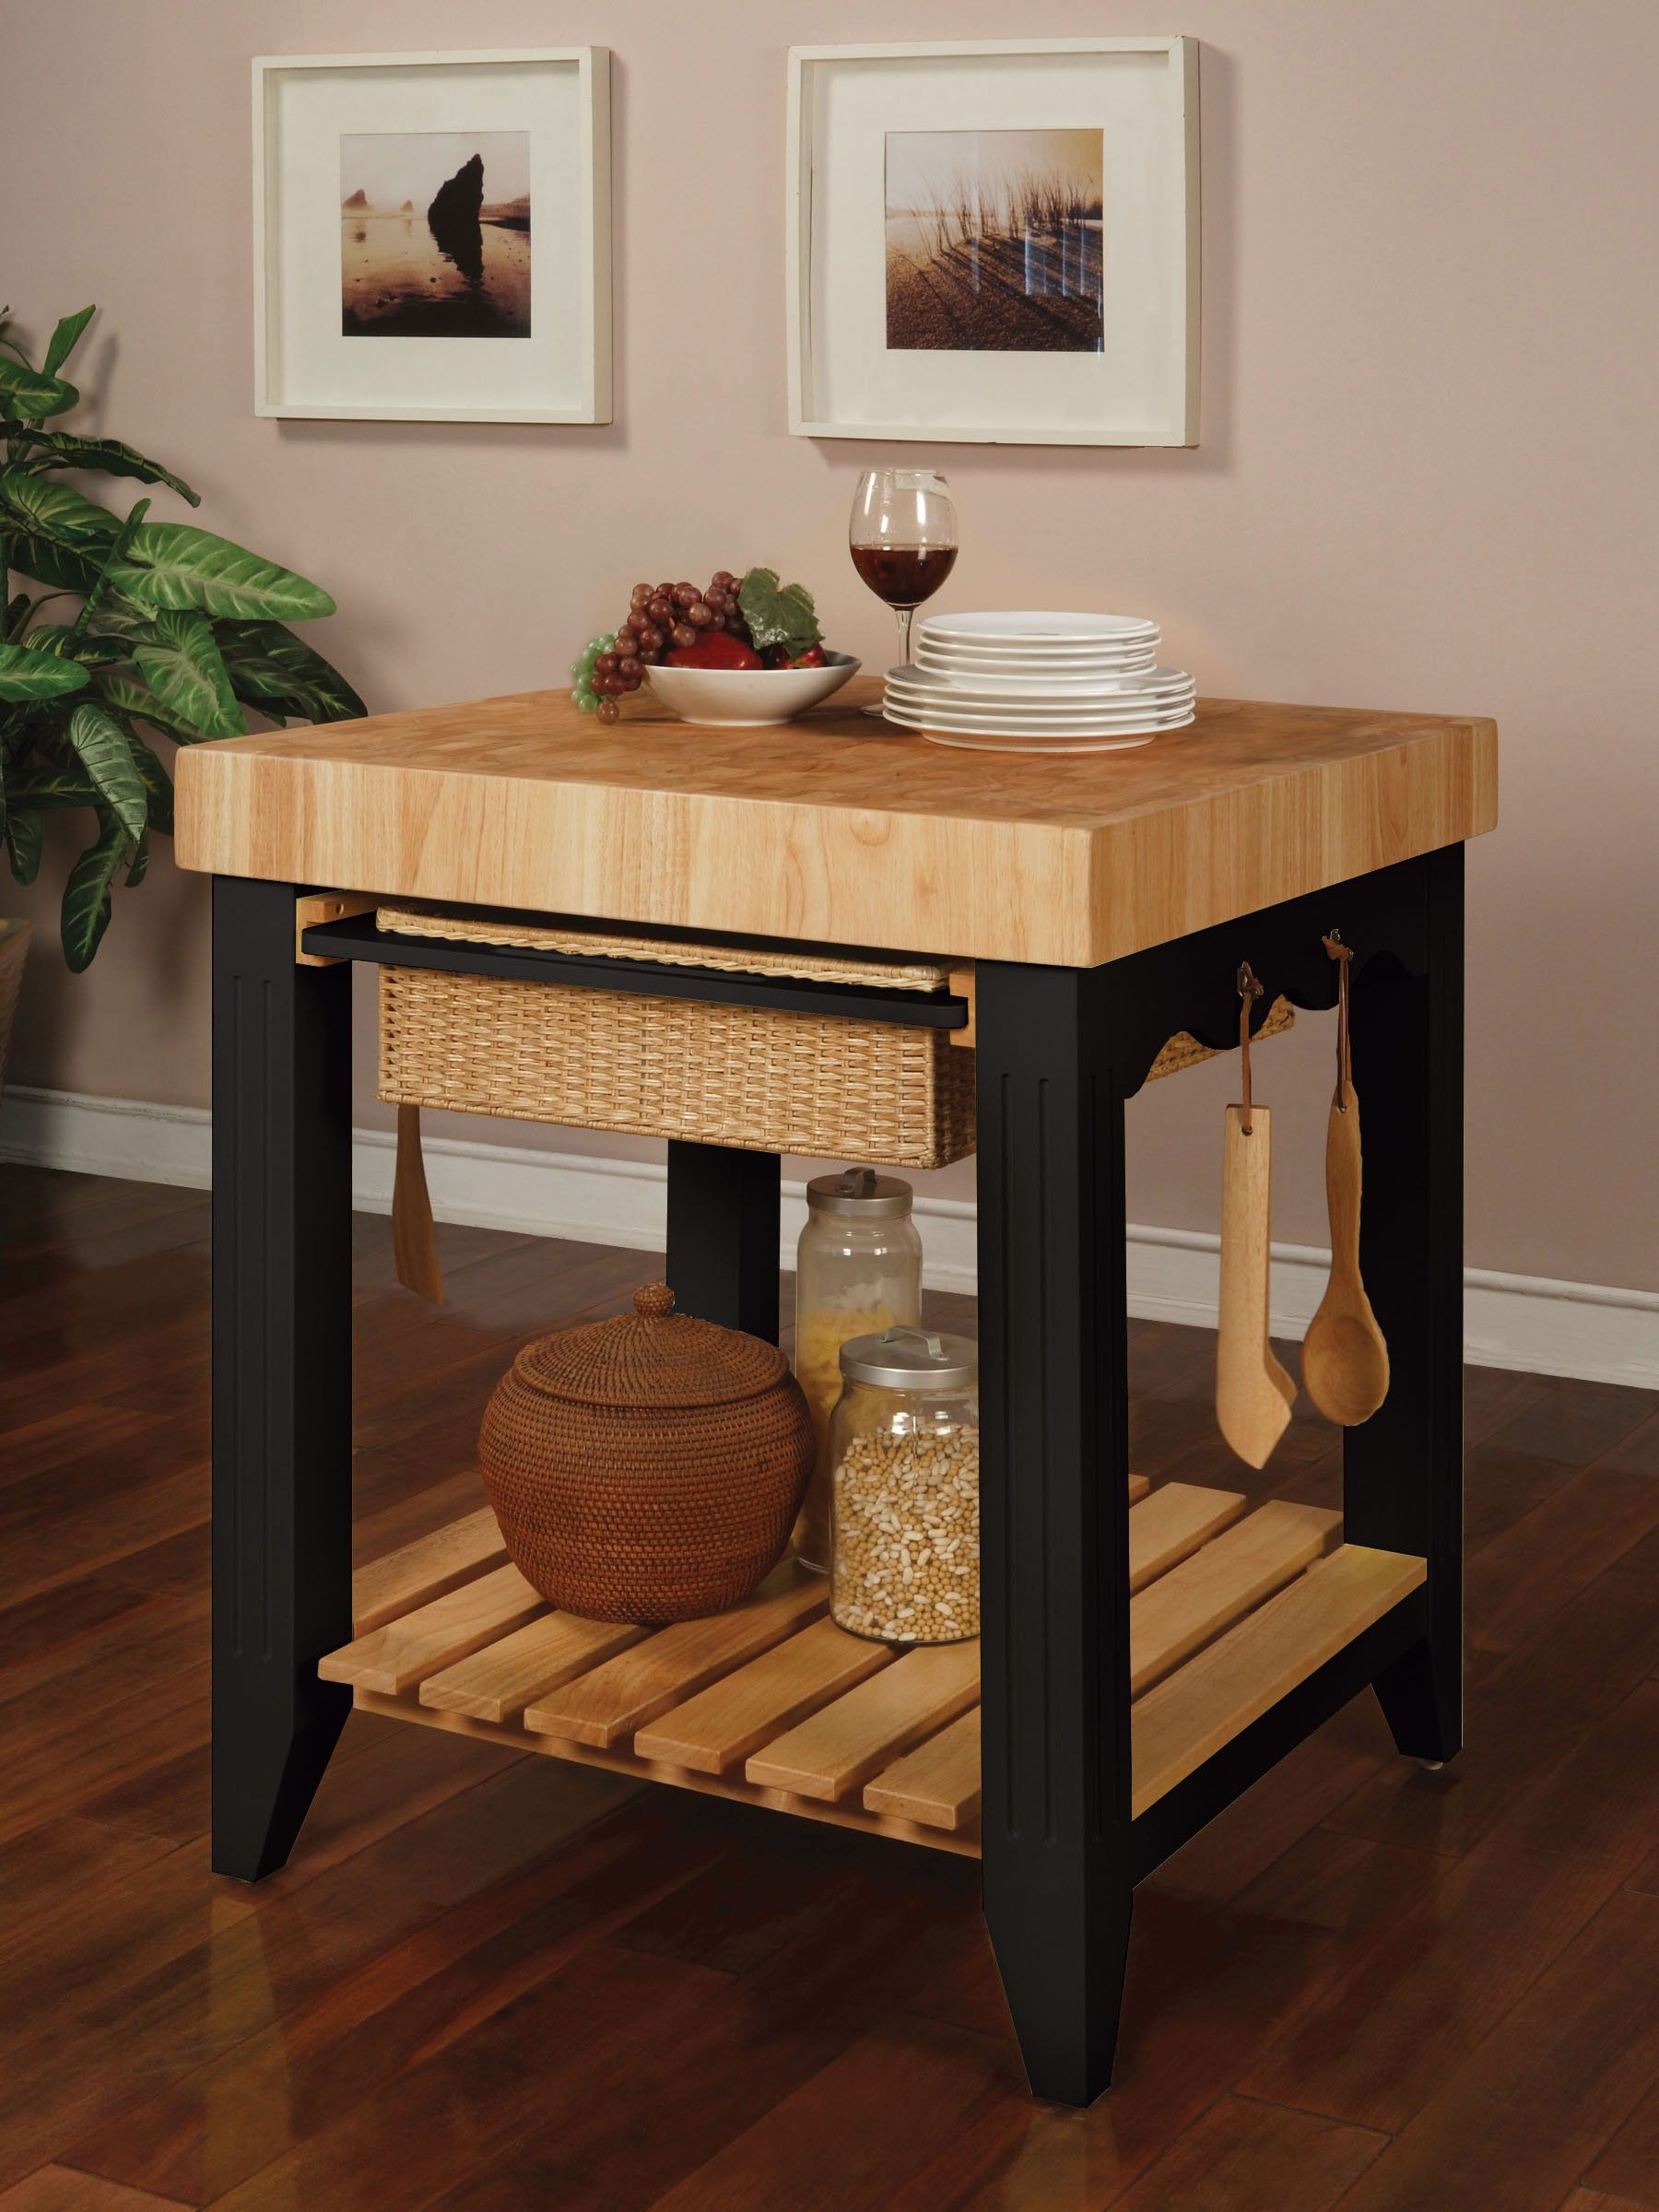 White Kitchen Island With Butcher Block Top And 4 Legs Black Wooden Butcher  Block With Natural Wooden Counter Top Also Butcher Block Kitchen Table, ...